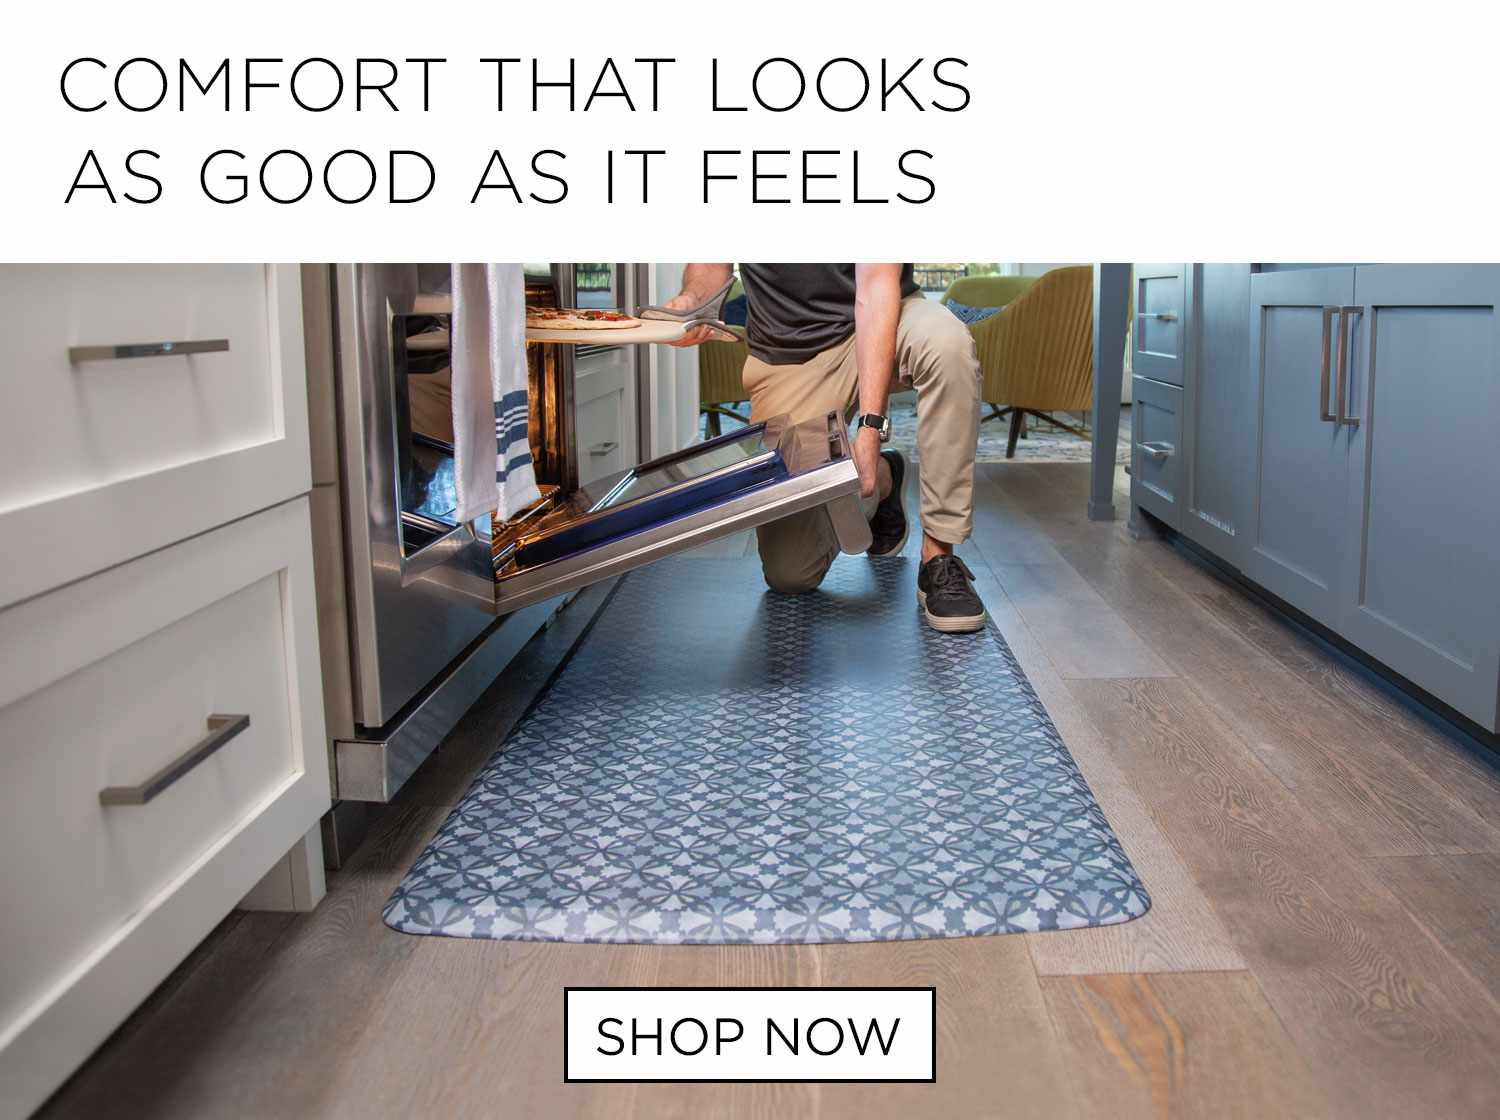 Kitchen Floor Mats For Comfort The Ultimate Anti Fatigue Mat From Gelpro